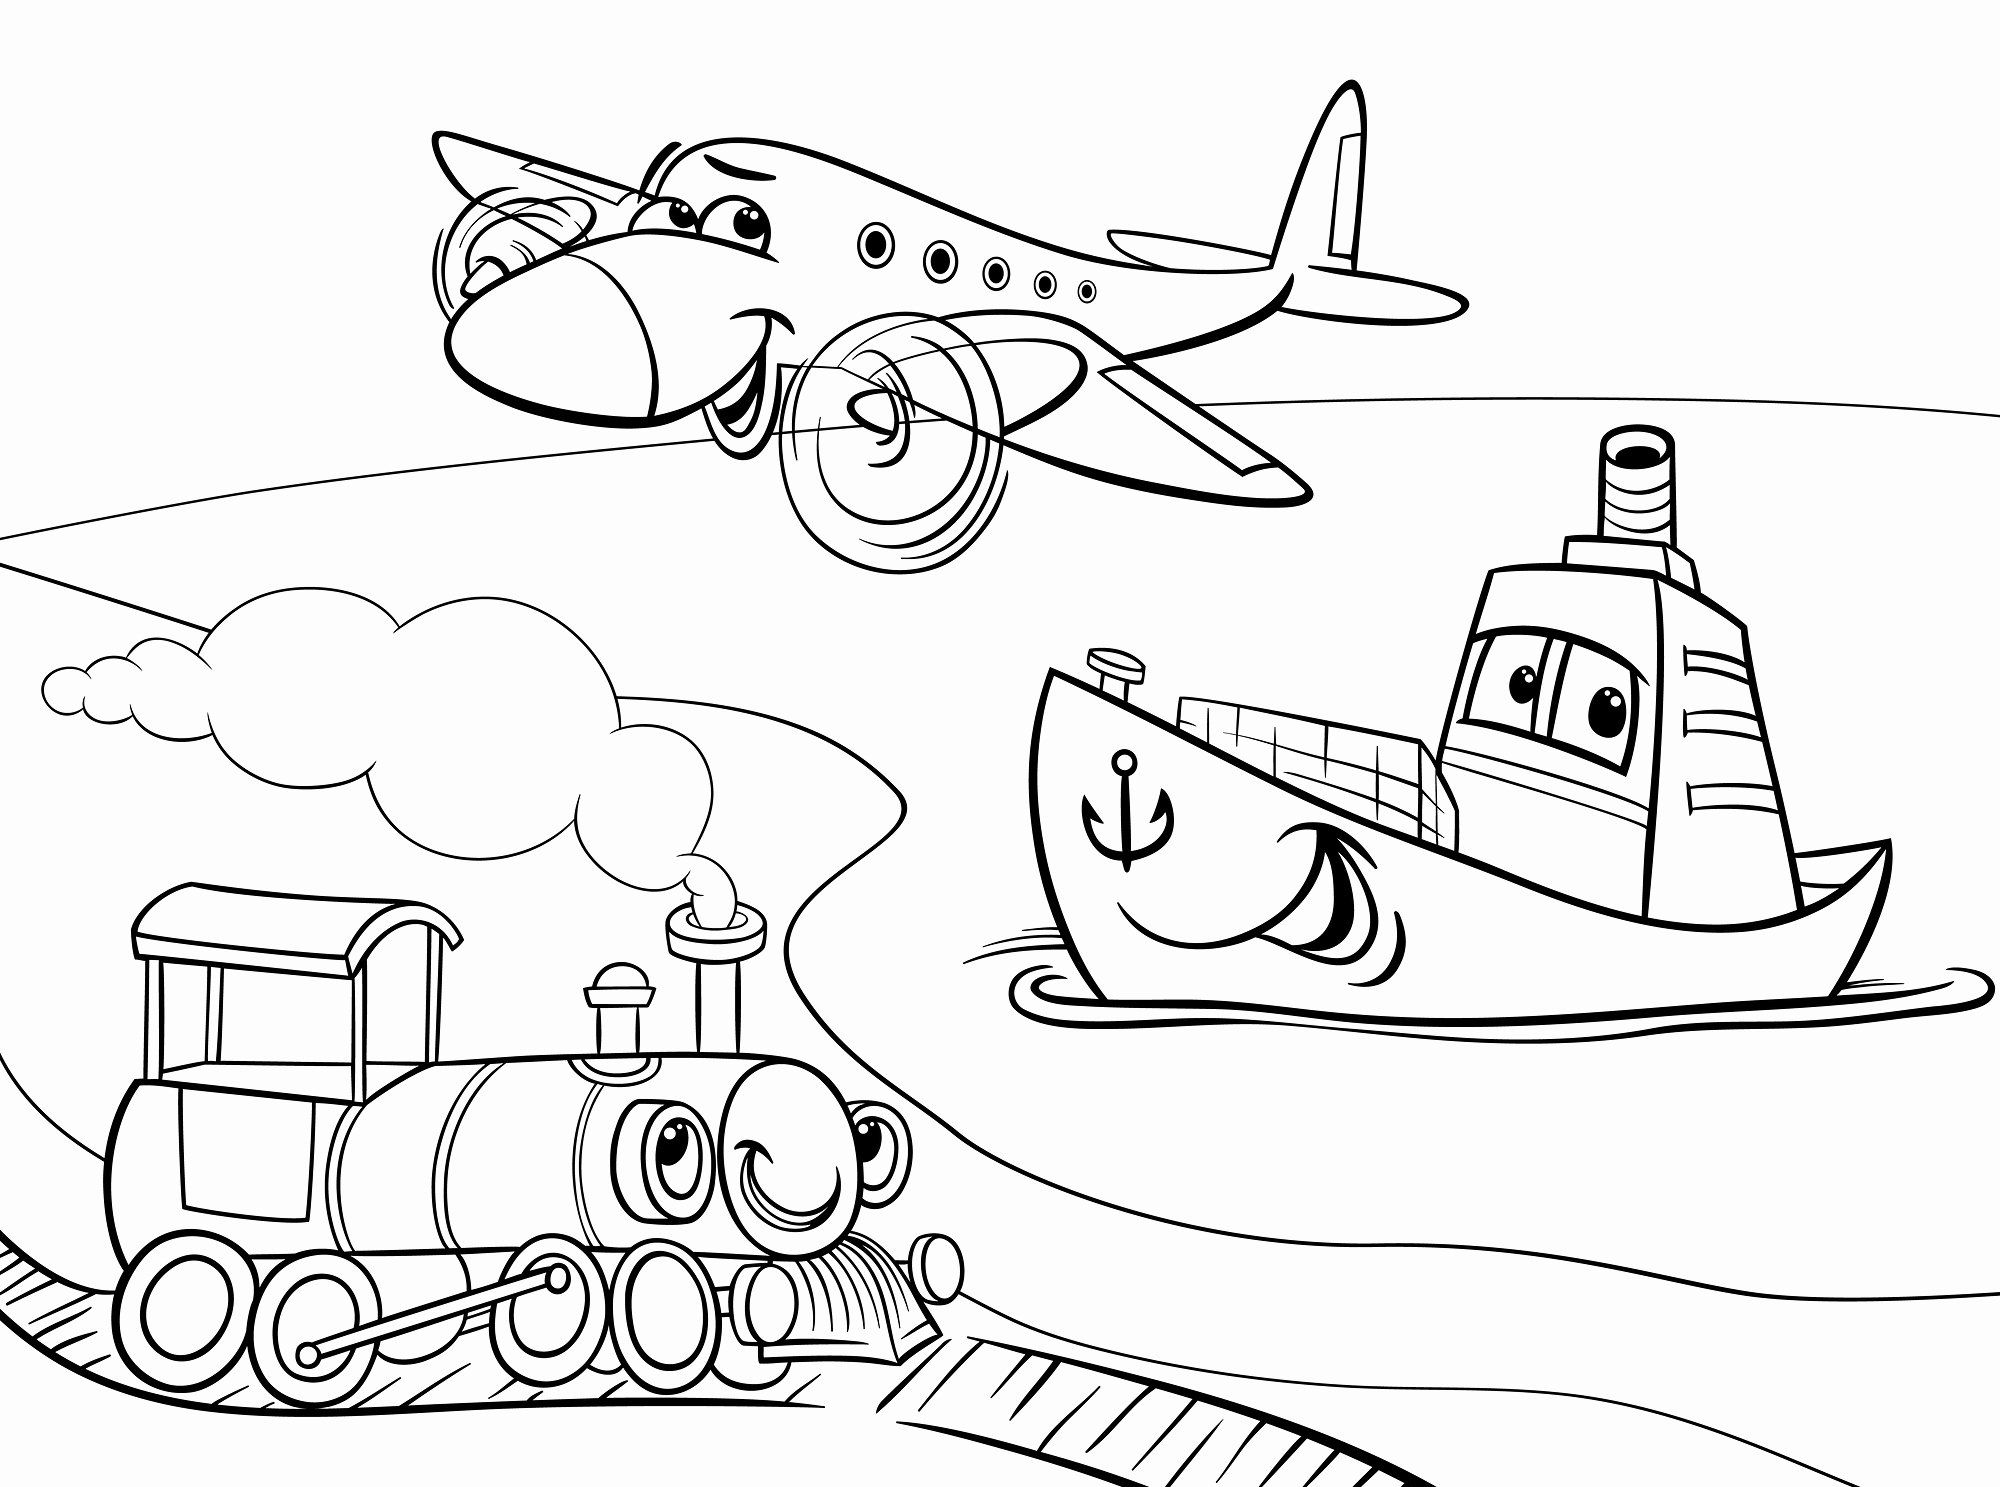 Land Transport Coloring Pages Luxury Road Trip Ideas For Kids Travel Snacks Games My Life Cartoon Coloring Pages Coloring Pages Train Cartoon